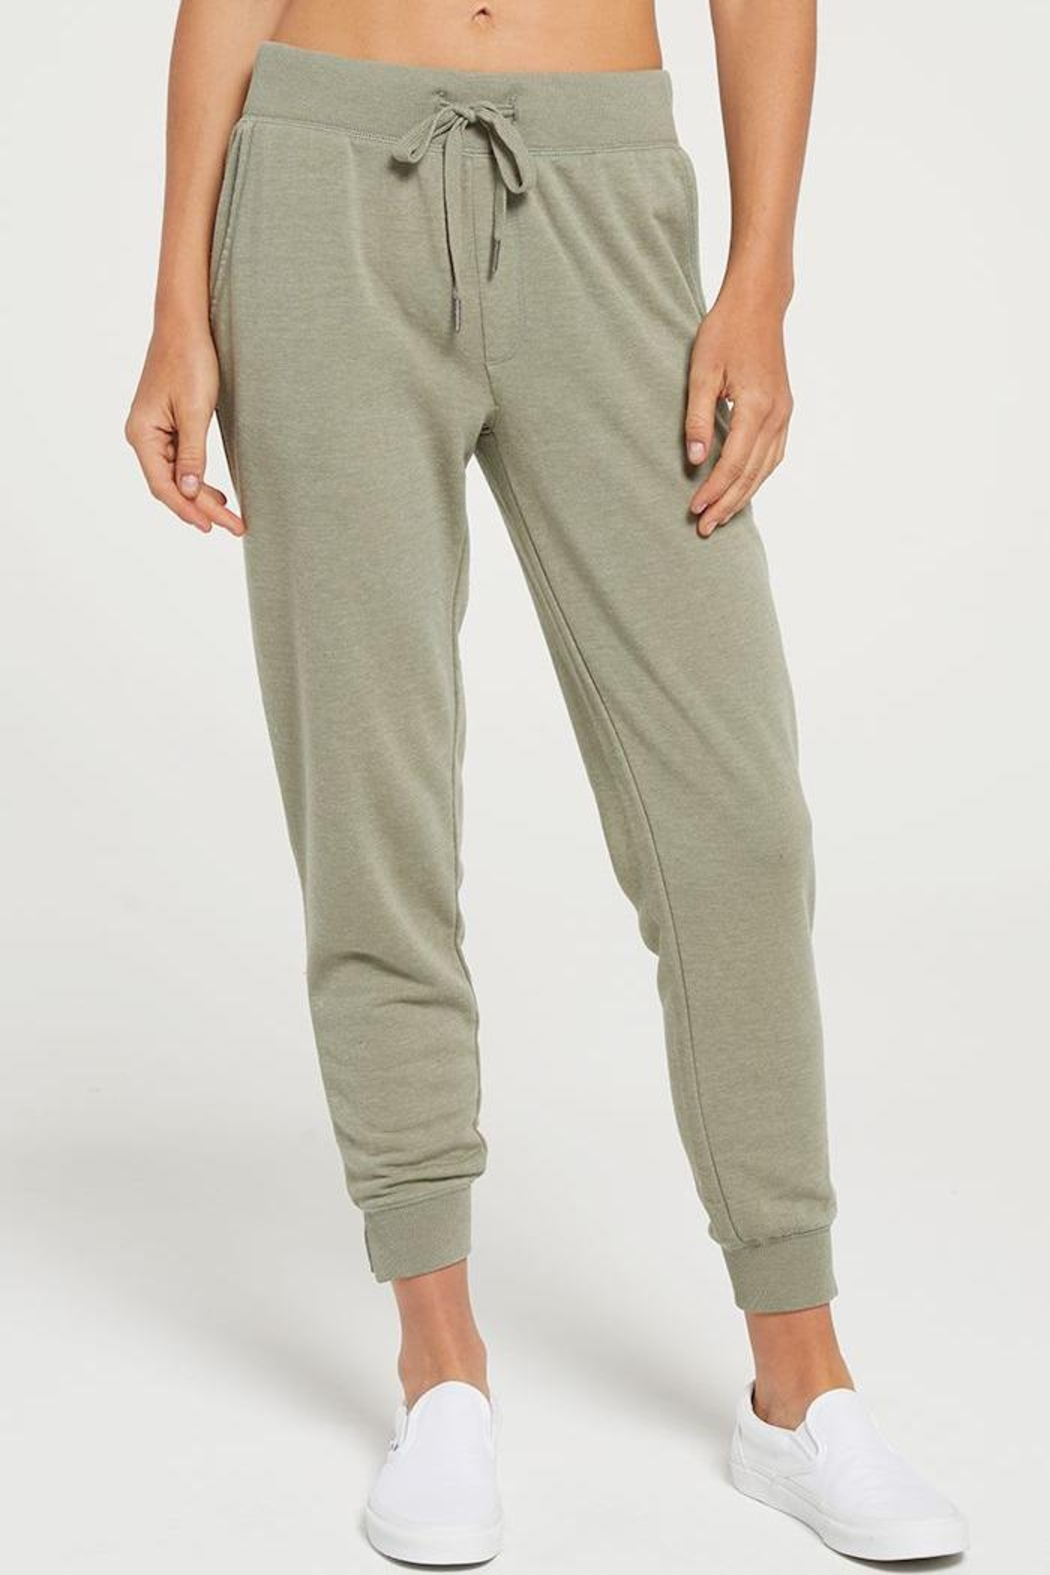 z supply Marled Jogger - Front Cropped Image